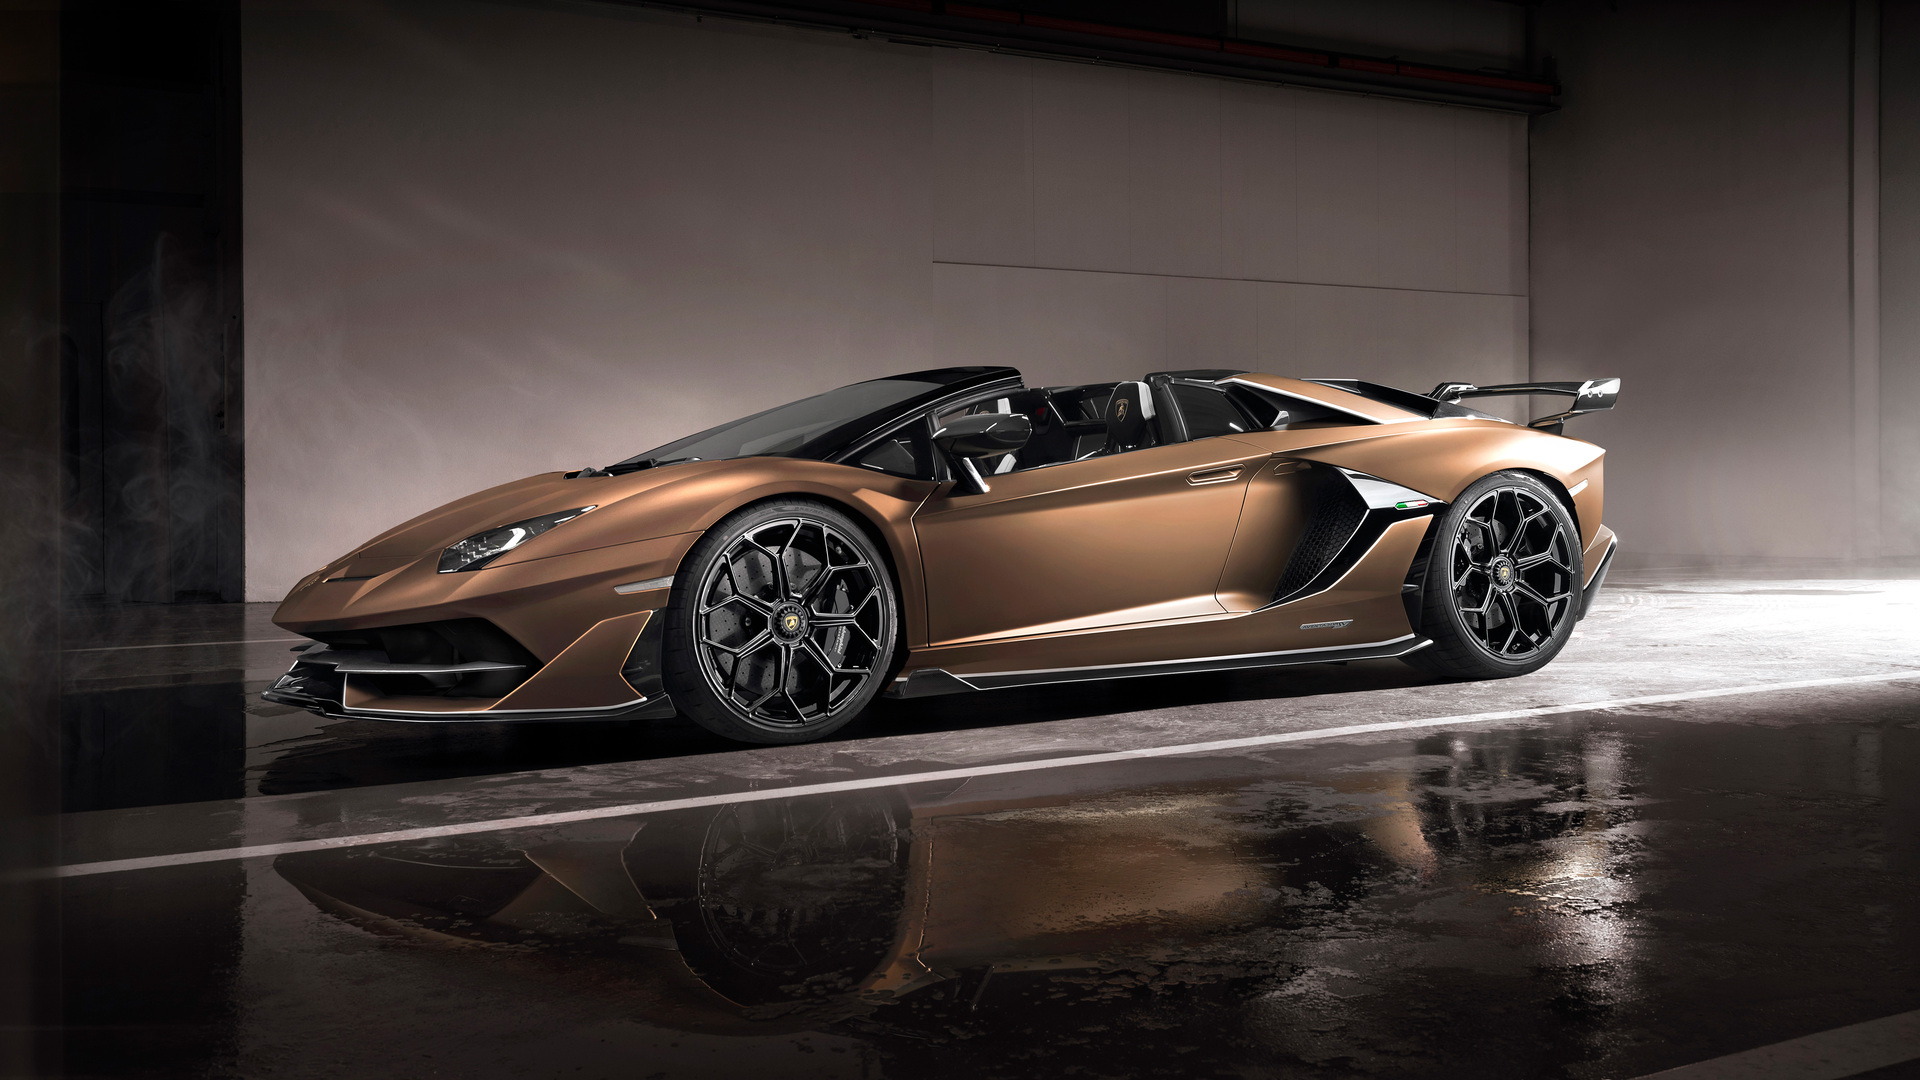 1920x1080 Lamborghini Aventador Svj Roadster 2019 Side View Laptop